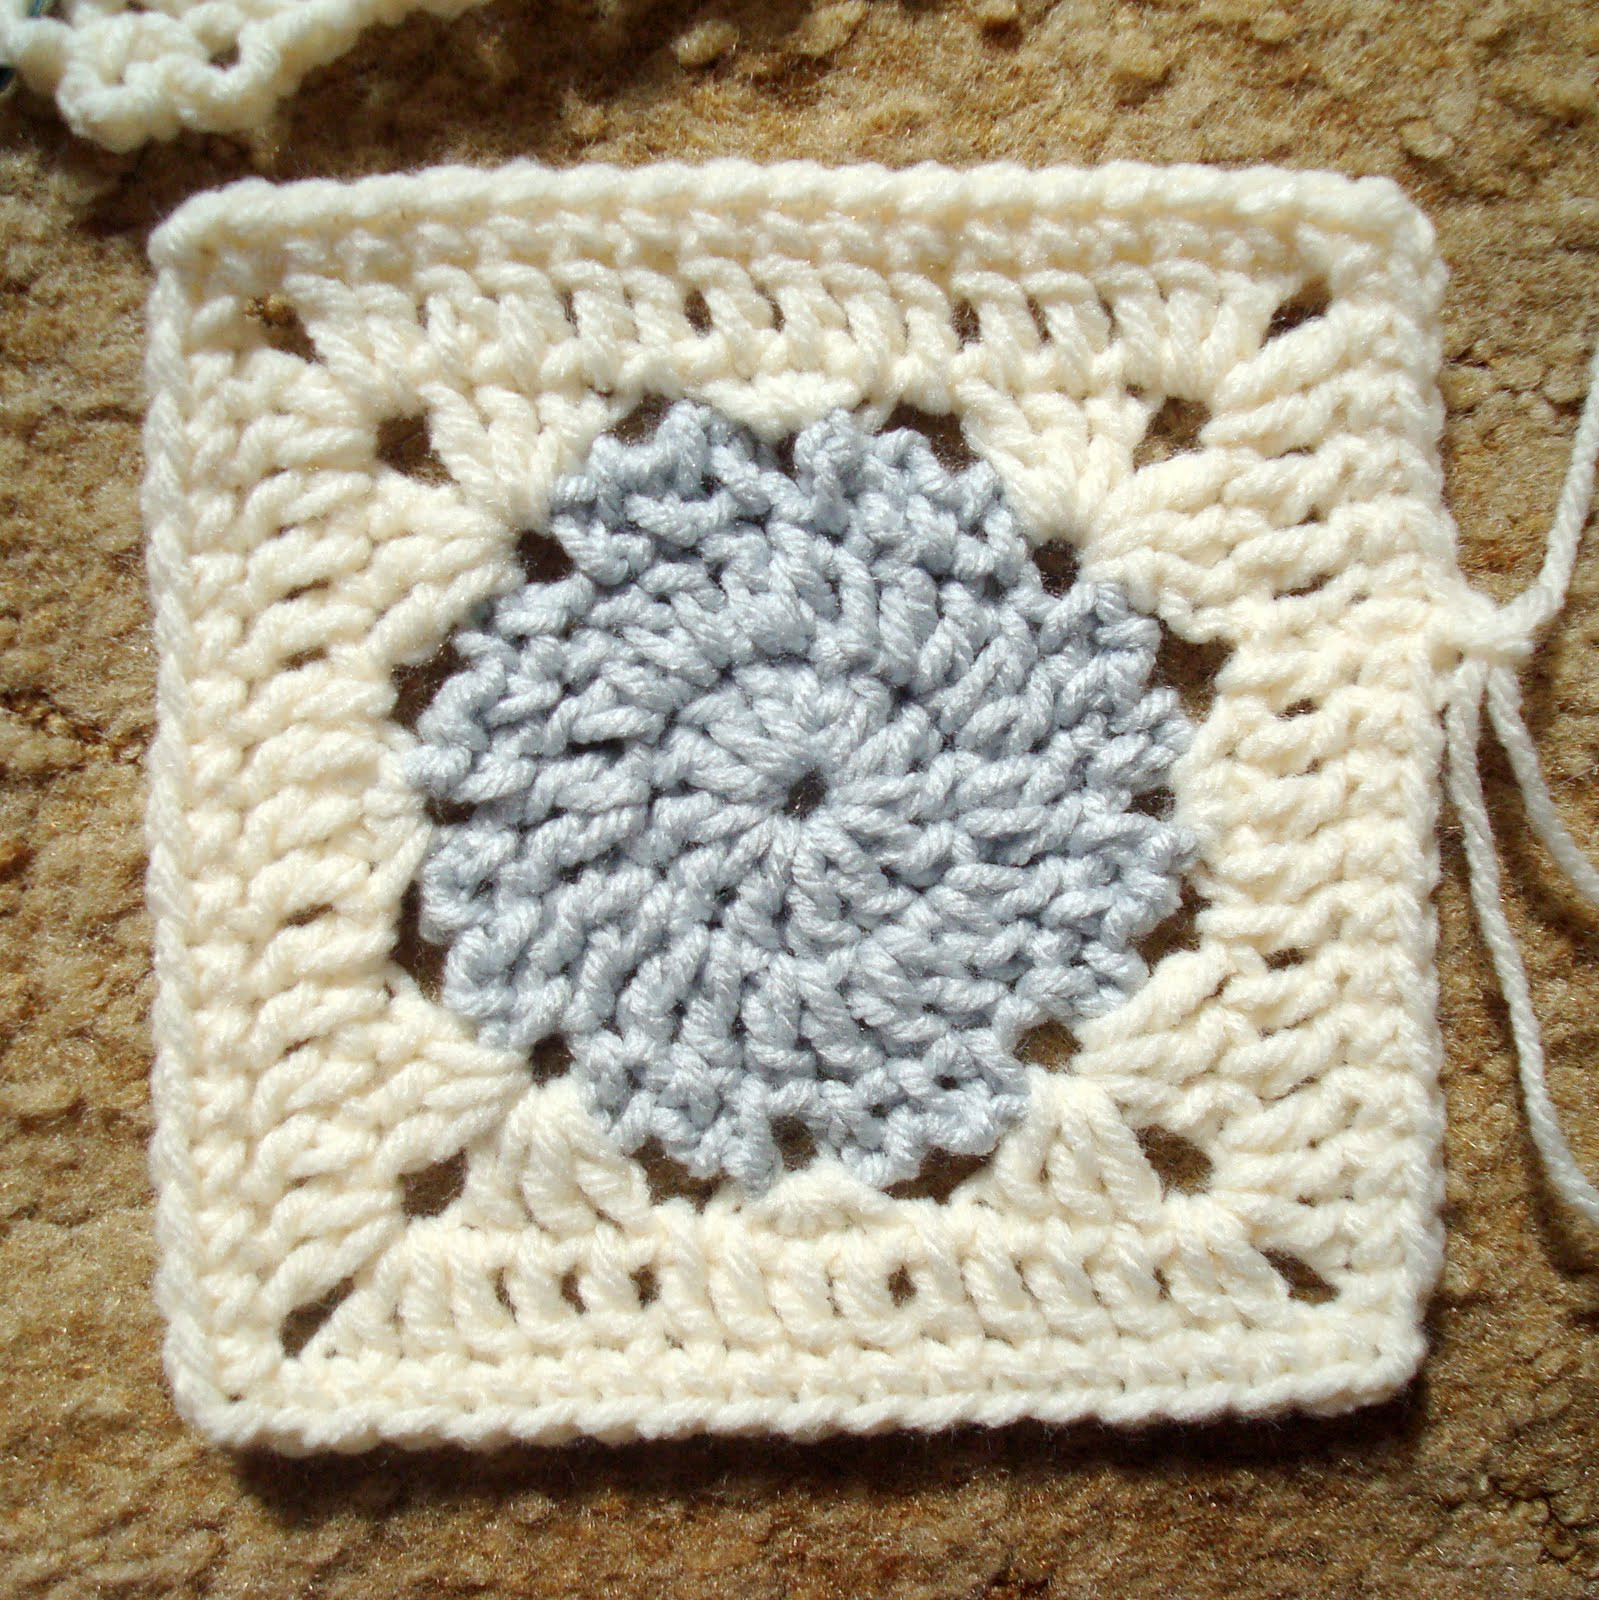 Crochet Hook and Yarn Unique My Little Blue House Squircle V 3 Of Superb 44 Images Crochet Hook and Yarn